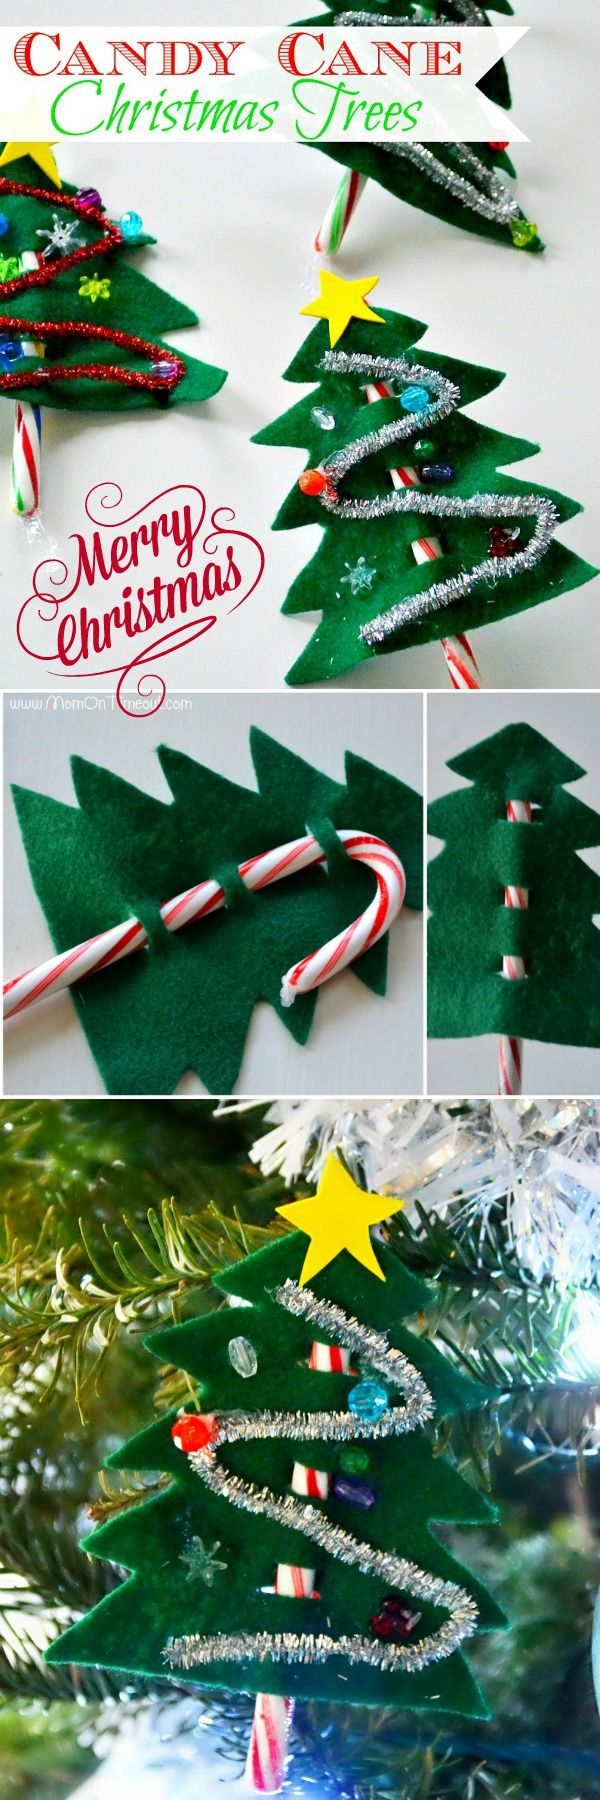 Candy Cane clipart christmas goody Best Pinterest Trees ideas Christmas